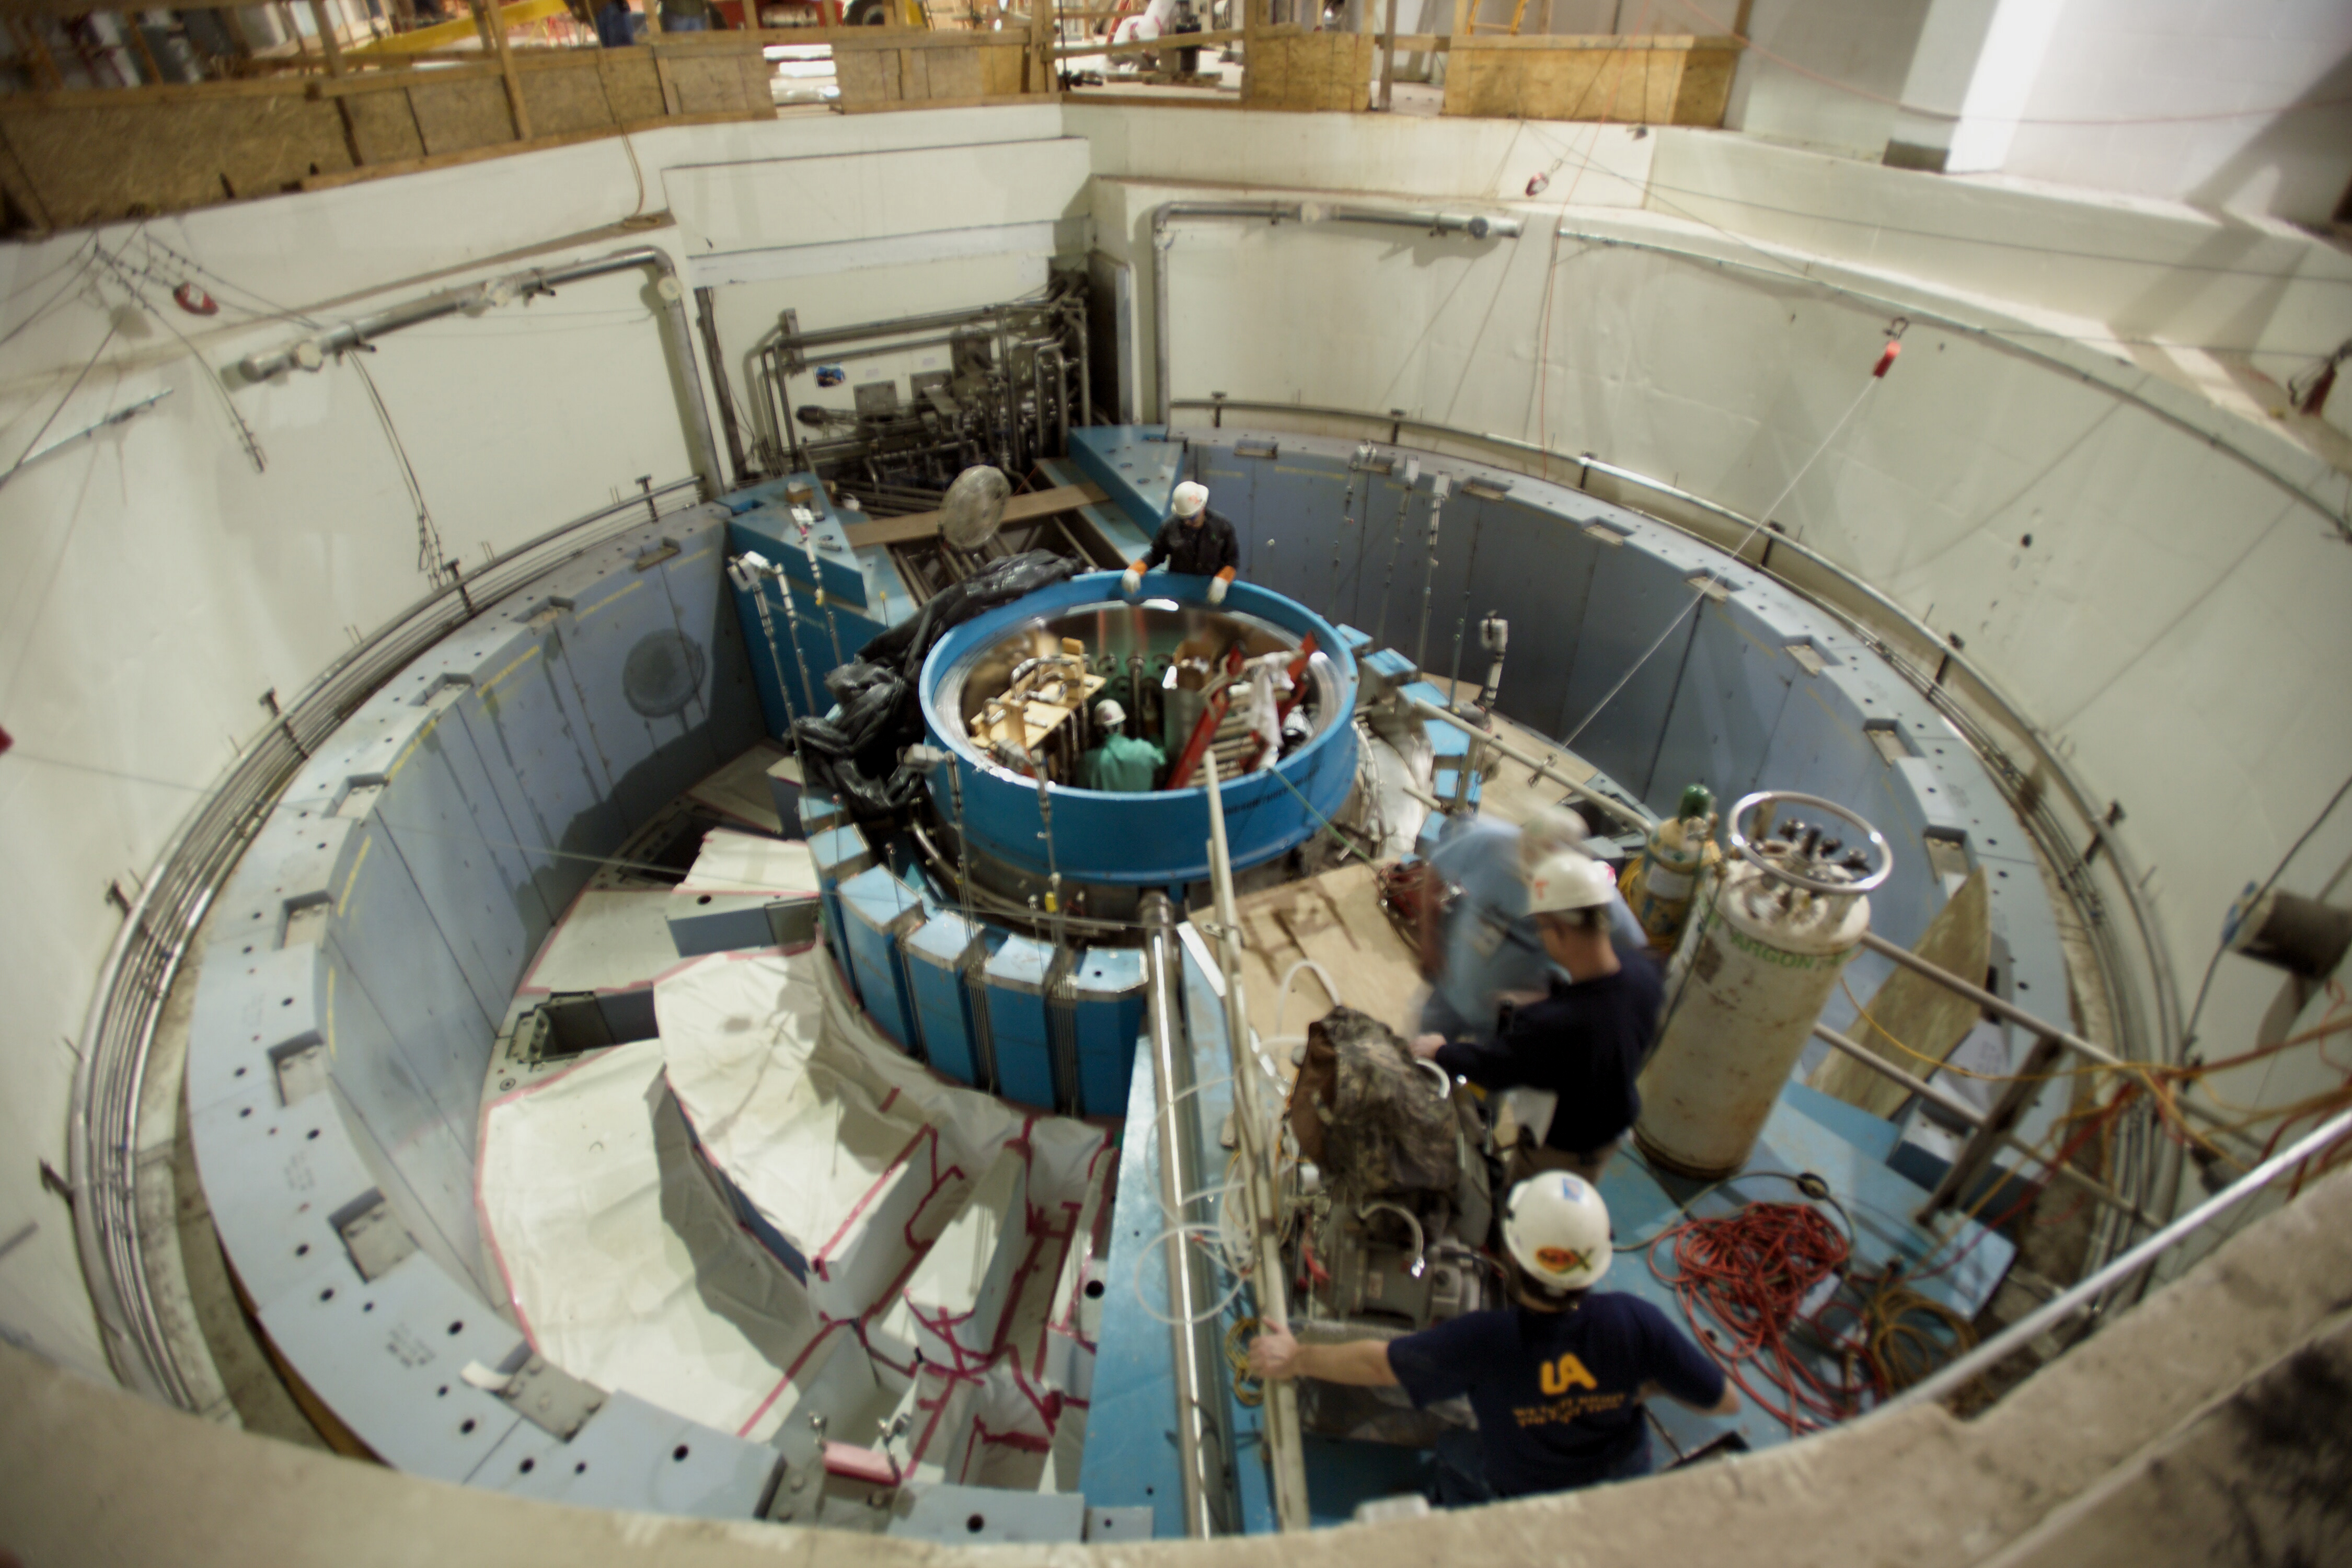 From 2005, installation nearing completion of the target building interior where neutrons are created via spallation and sent to the surrounding instruments for research. (Credit: ORNL/Curtis Boles)